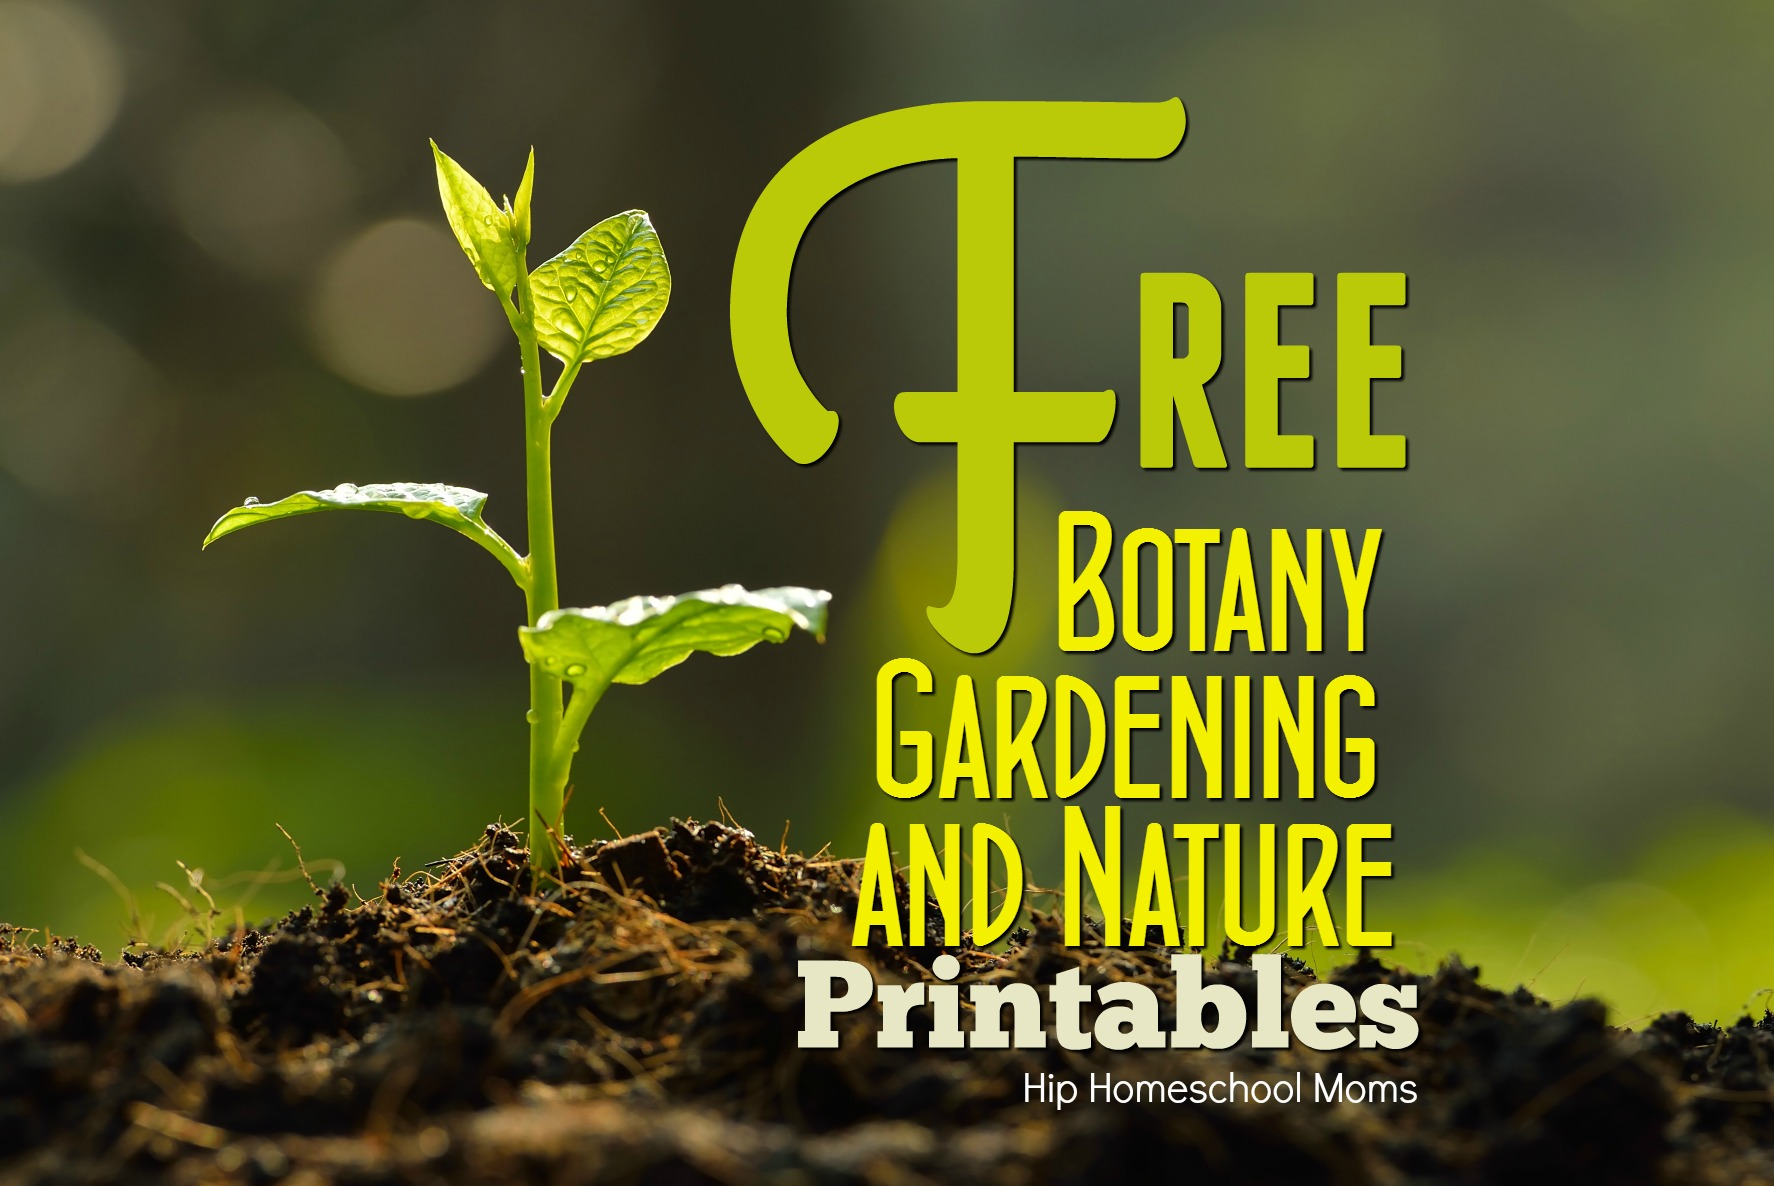 Botany, Gardening, and Nature Printables | Hip Homeschool Moms